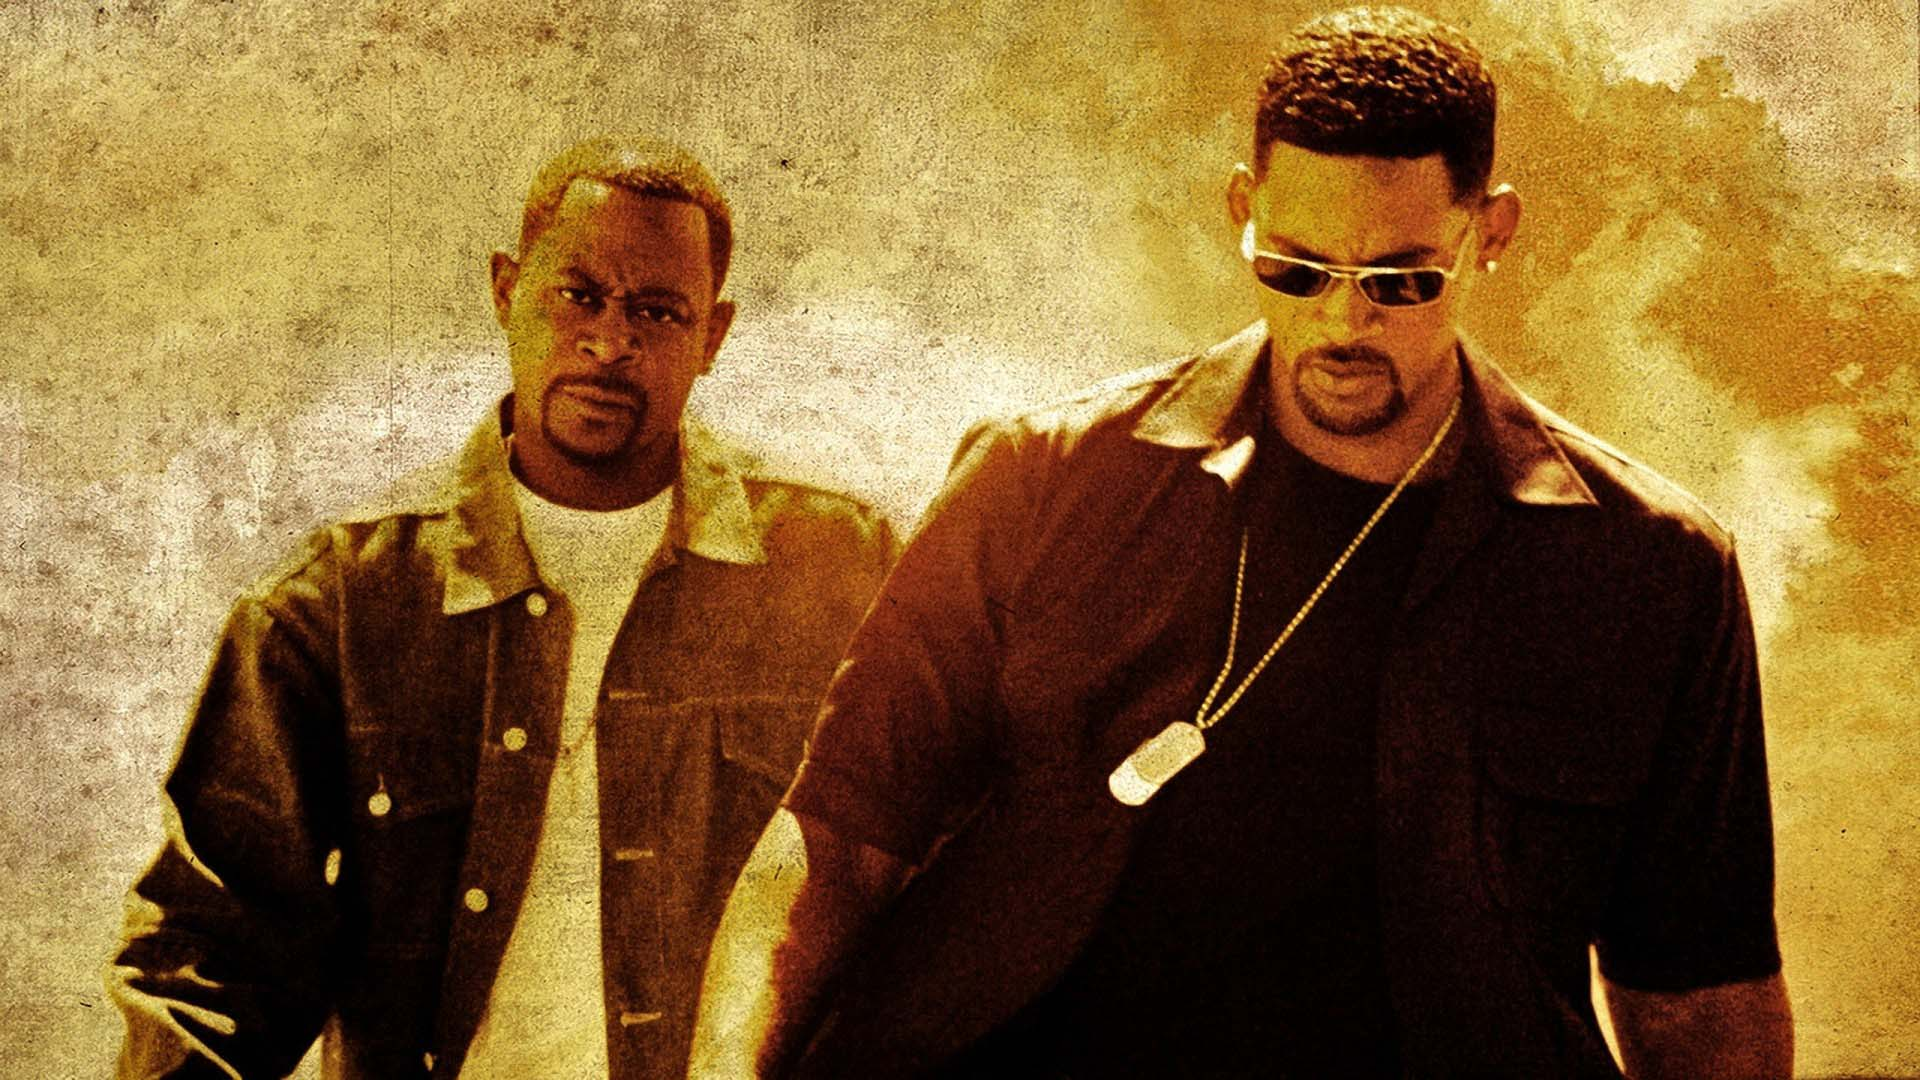 Martin Lawrence Confirms 'Bad Boys 3'